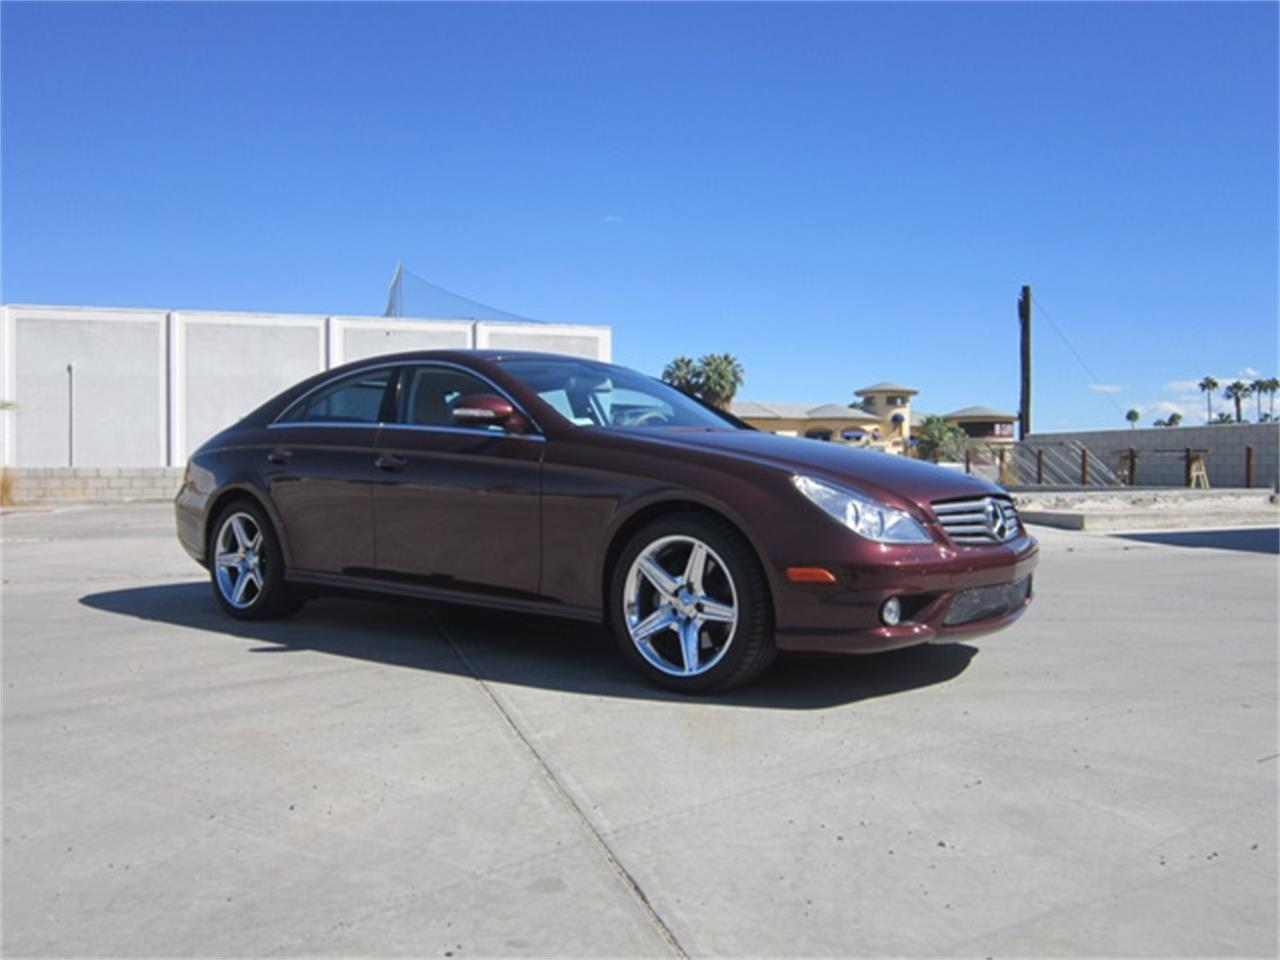 2008 Mercedes Benz Cls 550 For Sale Cc 1153426 Cls550 Rims Large Picture Of 08 Opzm